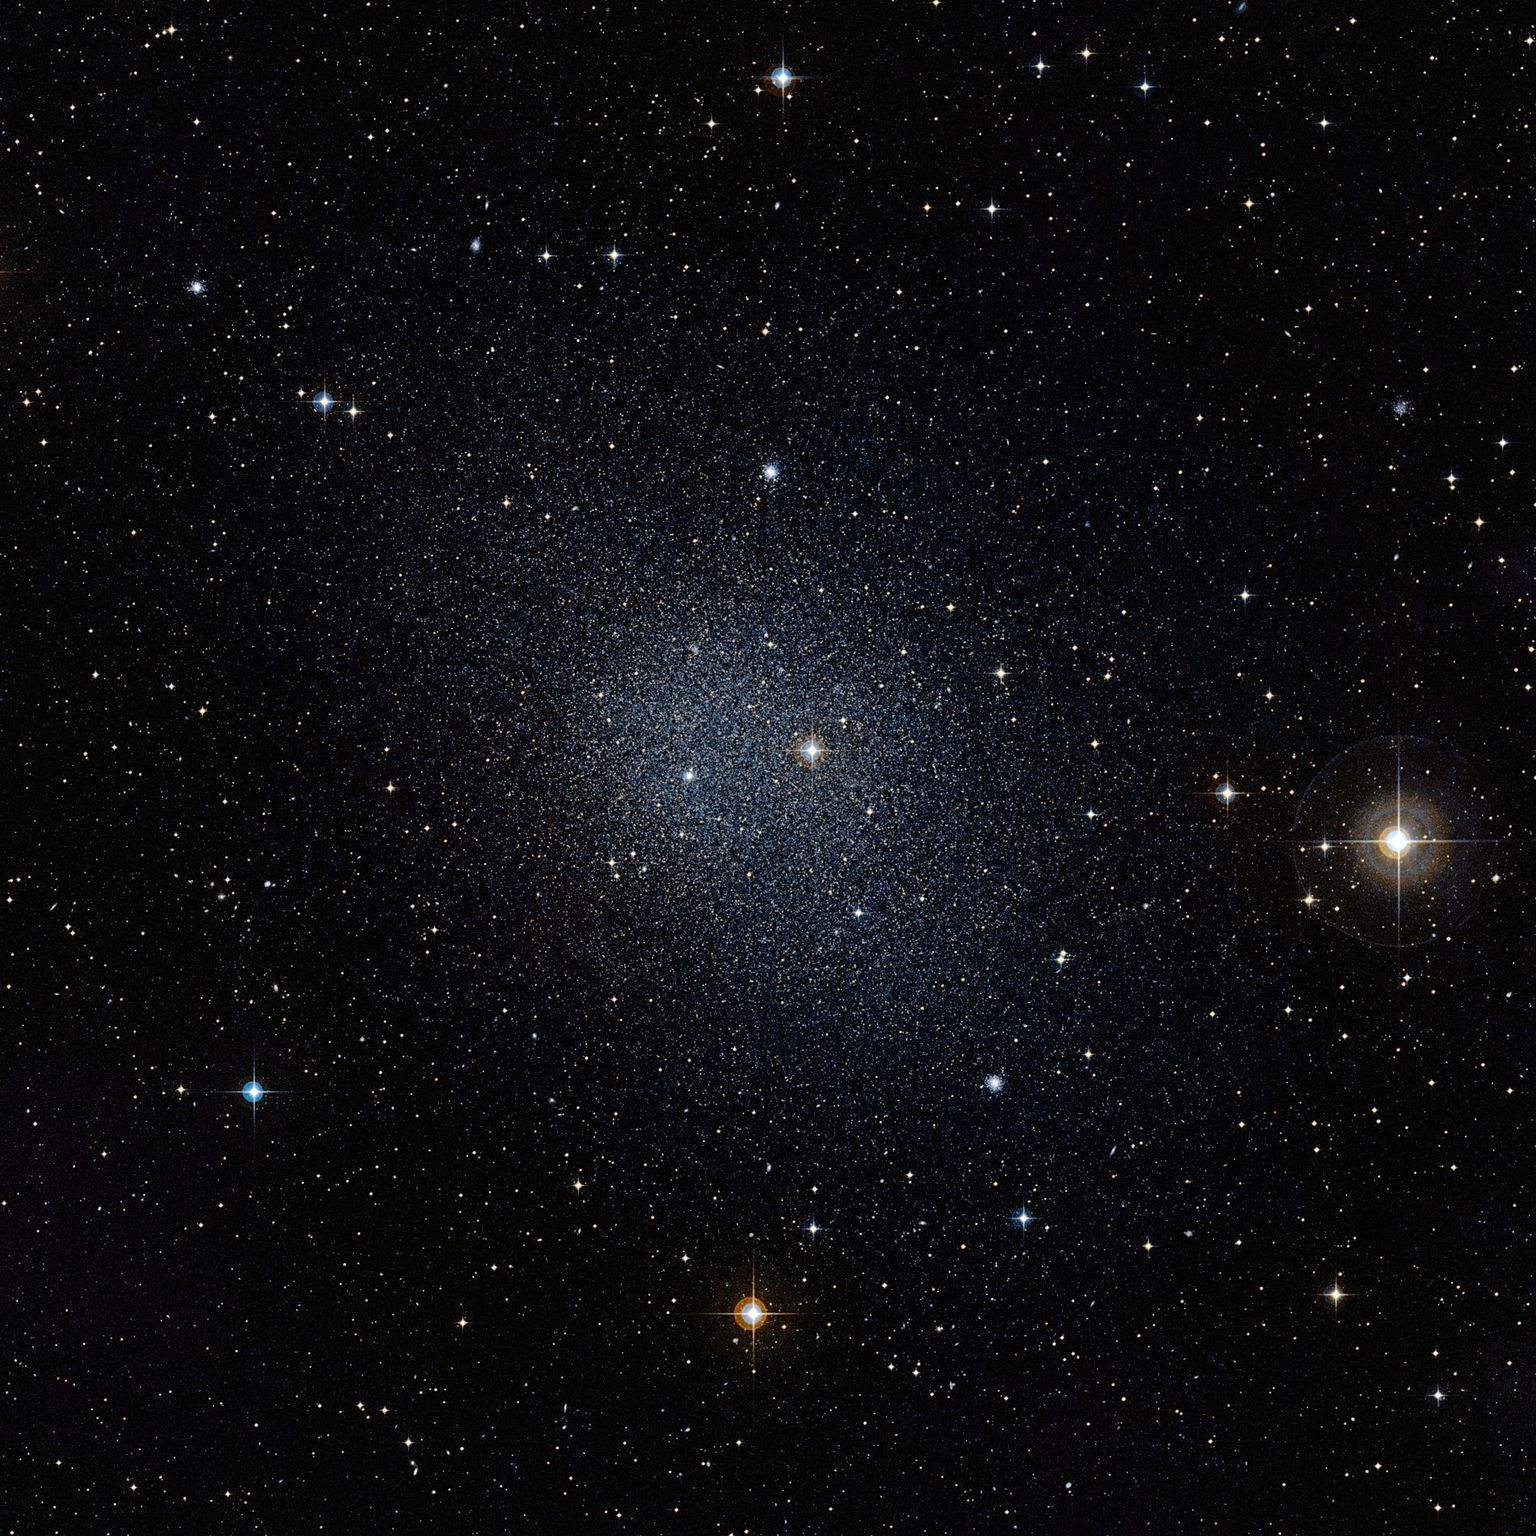 One of the dwarf galaxies which is orbiting around our Milky Way galaxy as part of a planar structure.